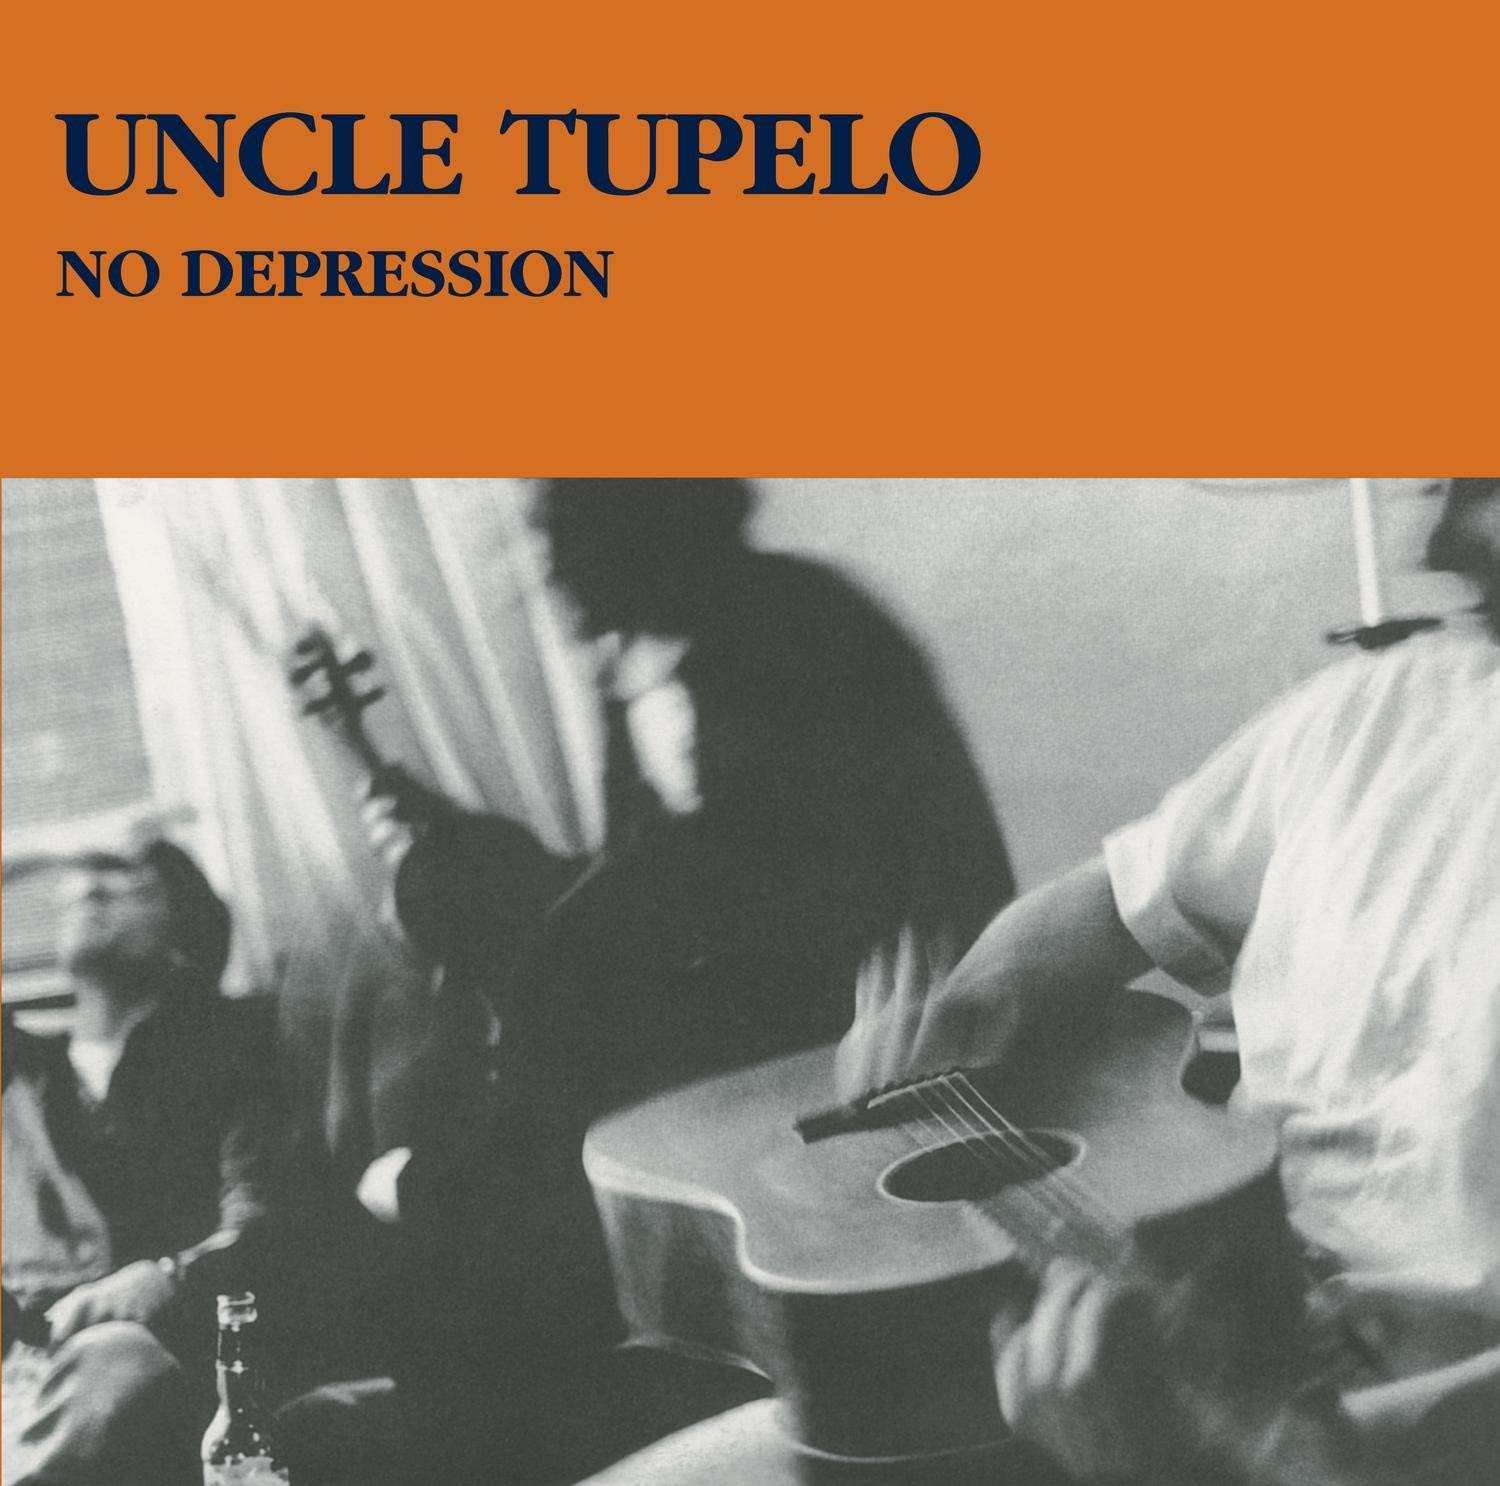 uncle tupelo 10 Years and 10 Questions with Jeff Tweedy